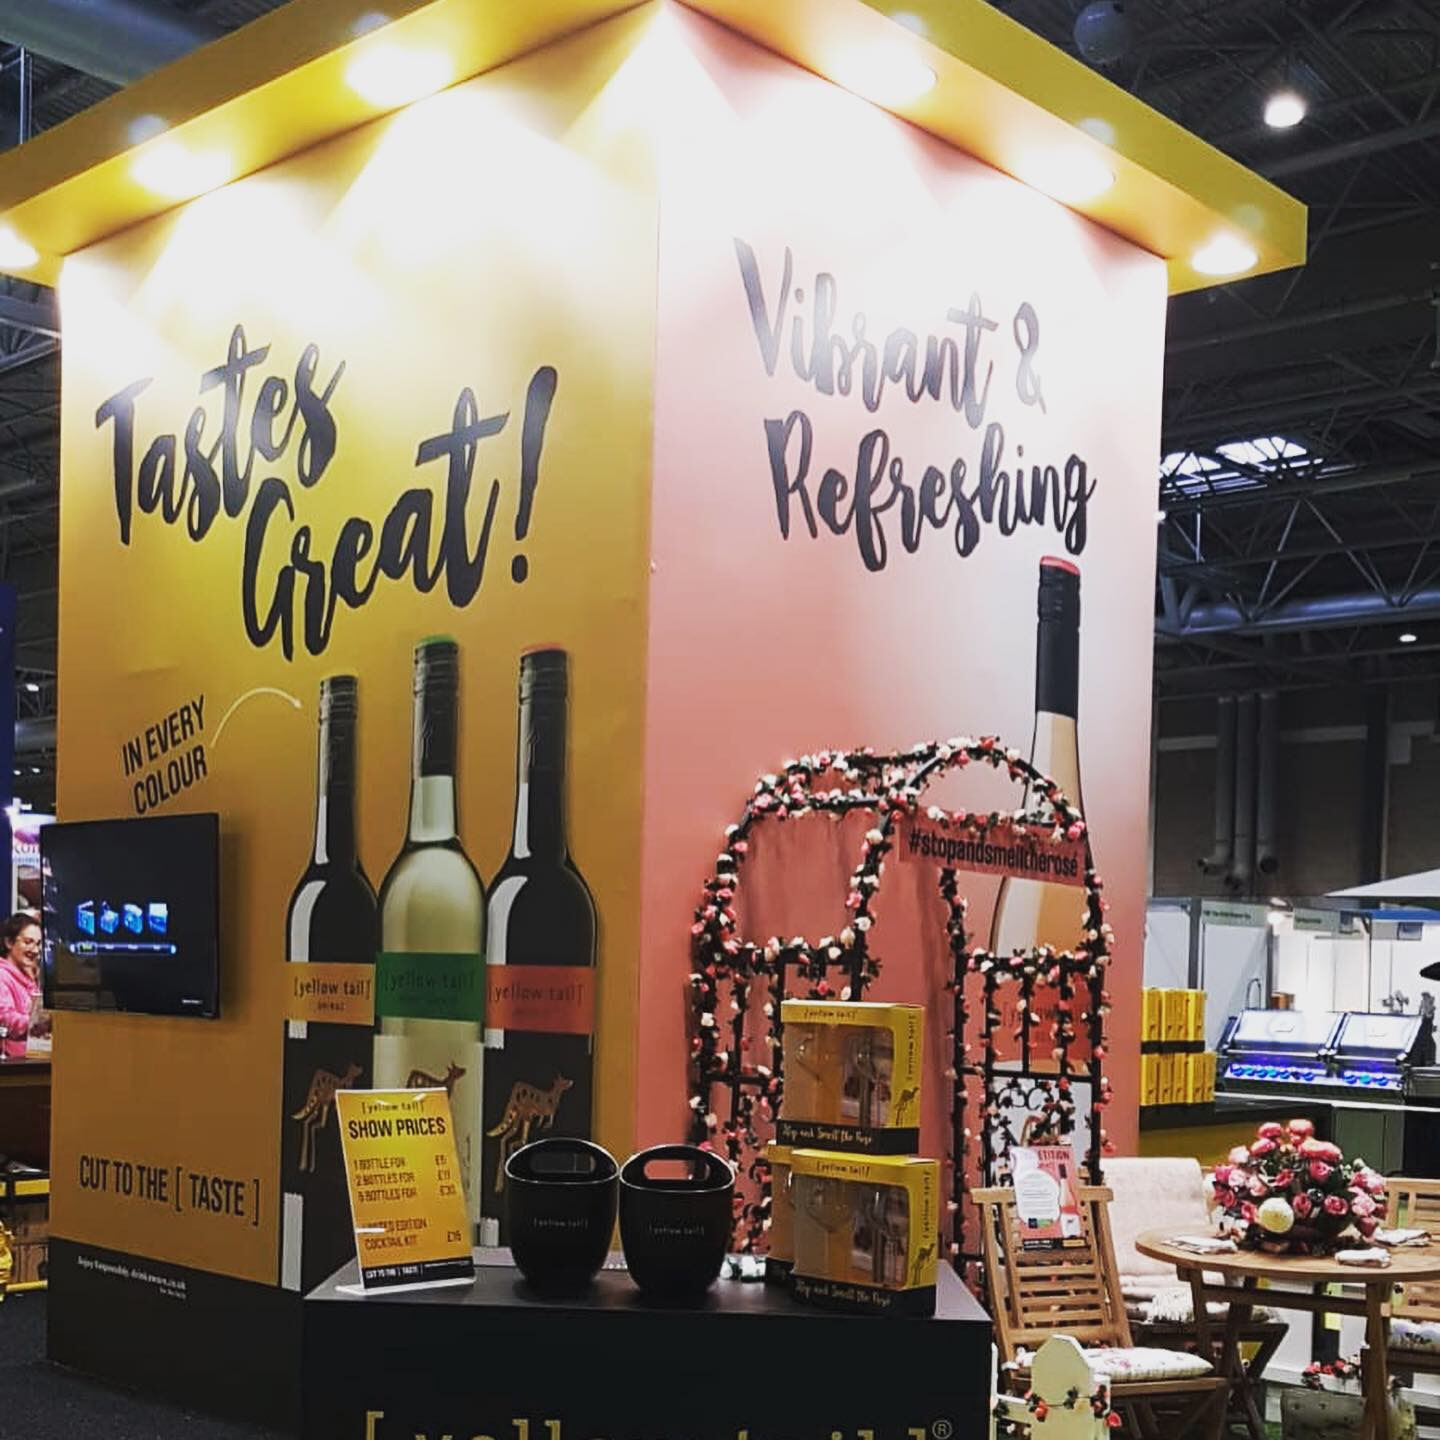 Yellow Tail – The Good Food Show 2019